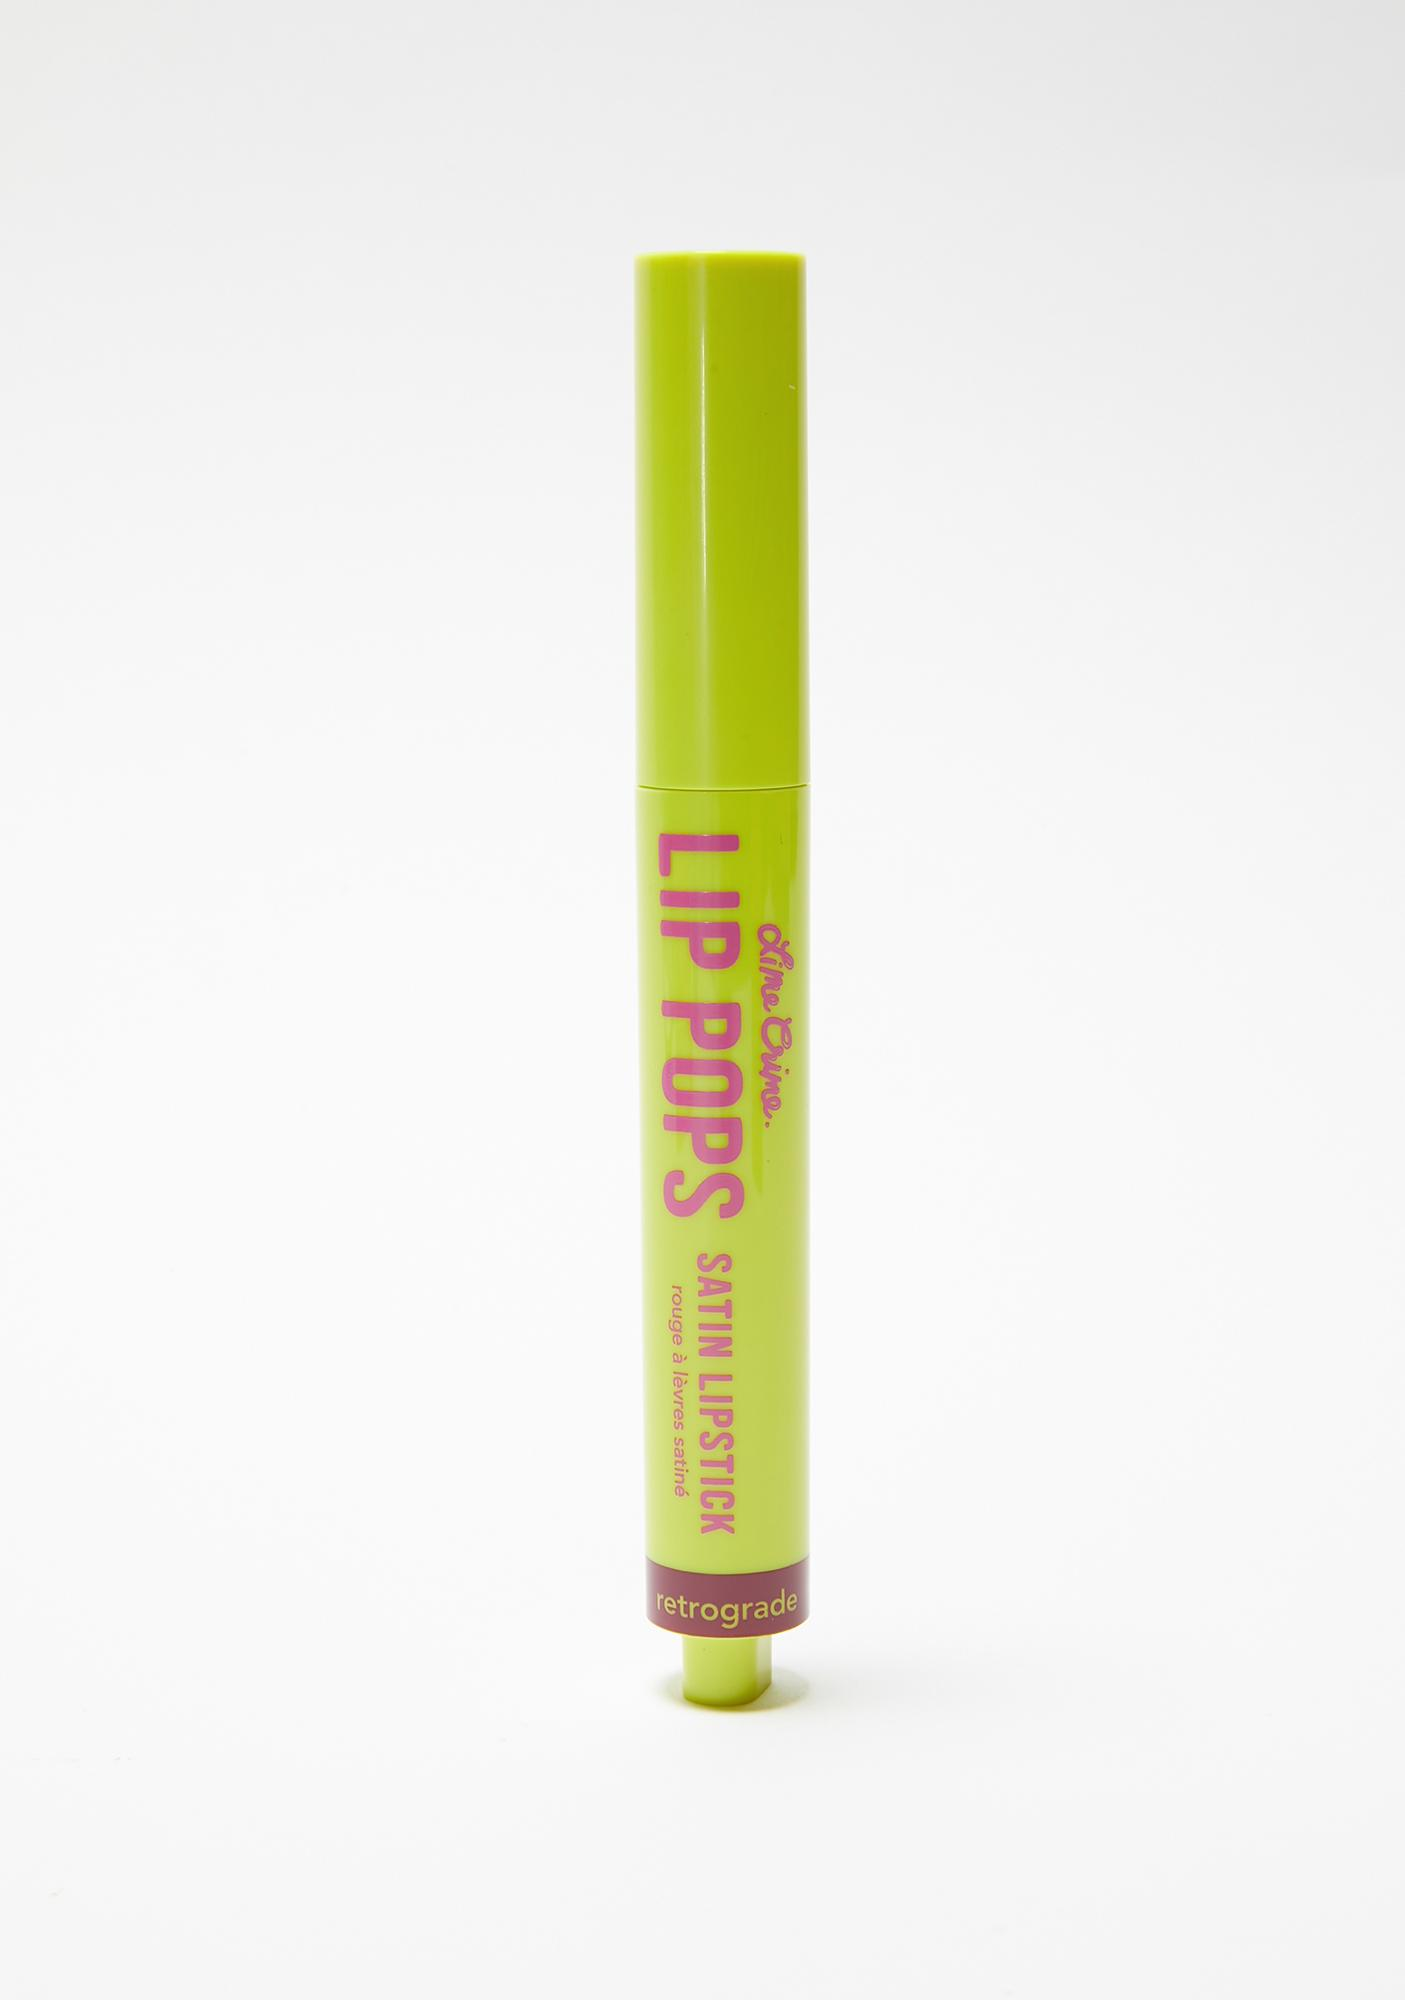 Lime Crime Retrograde Lip Pops Satin Lipstick